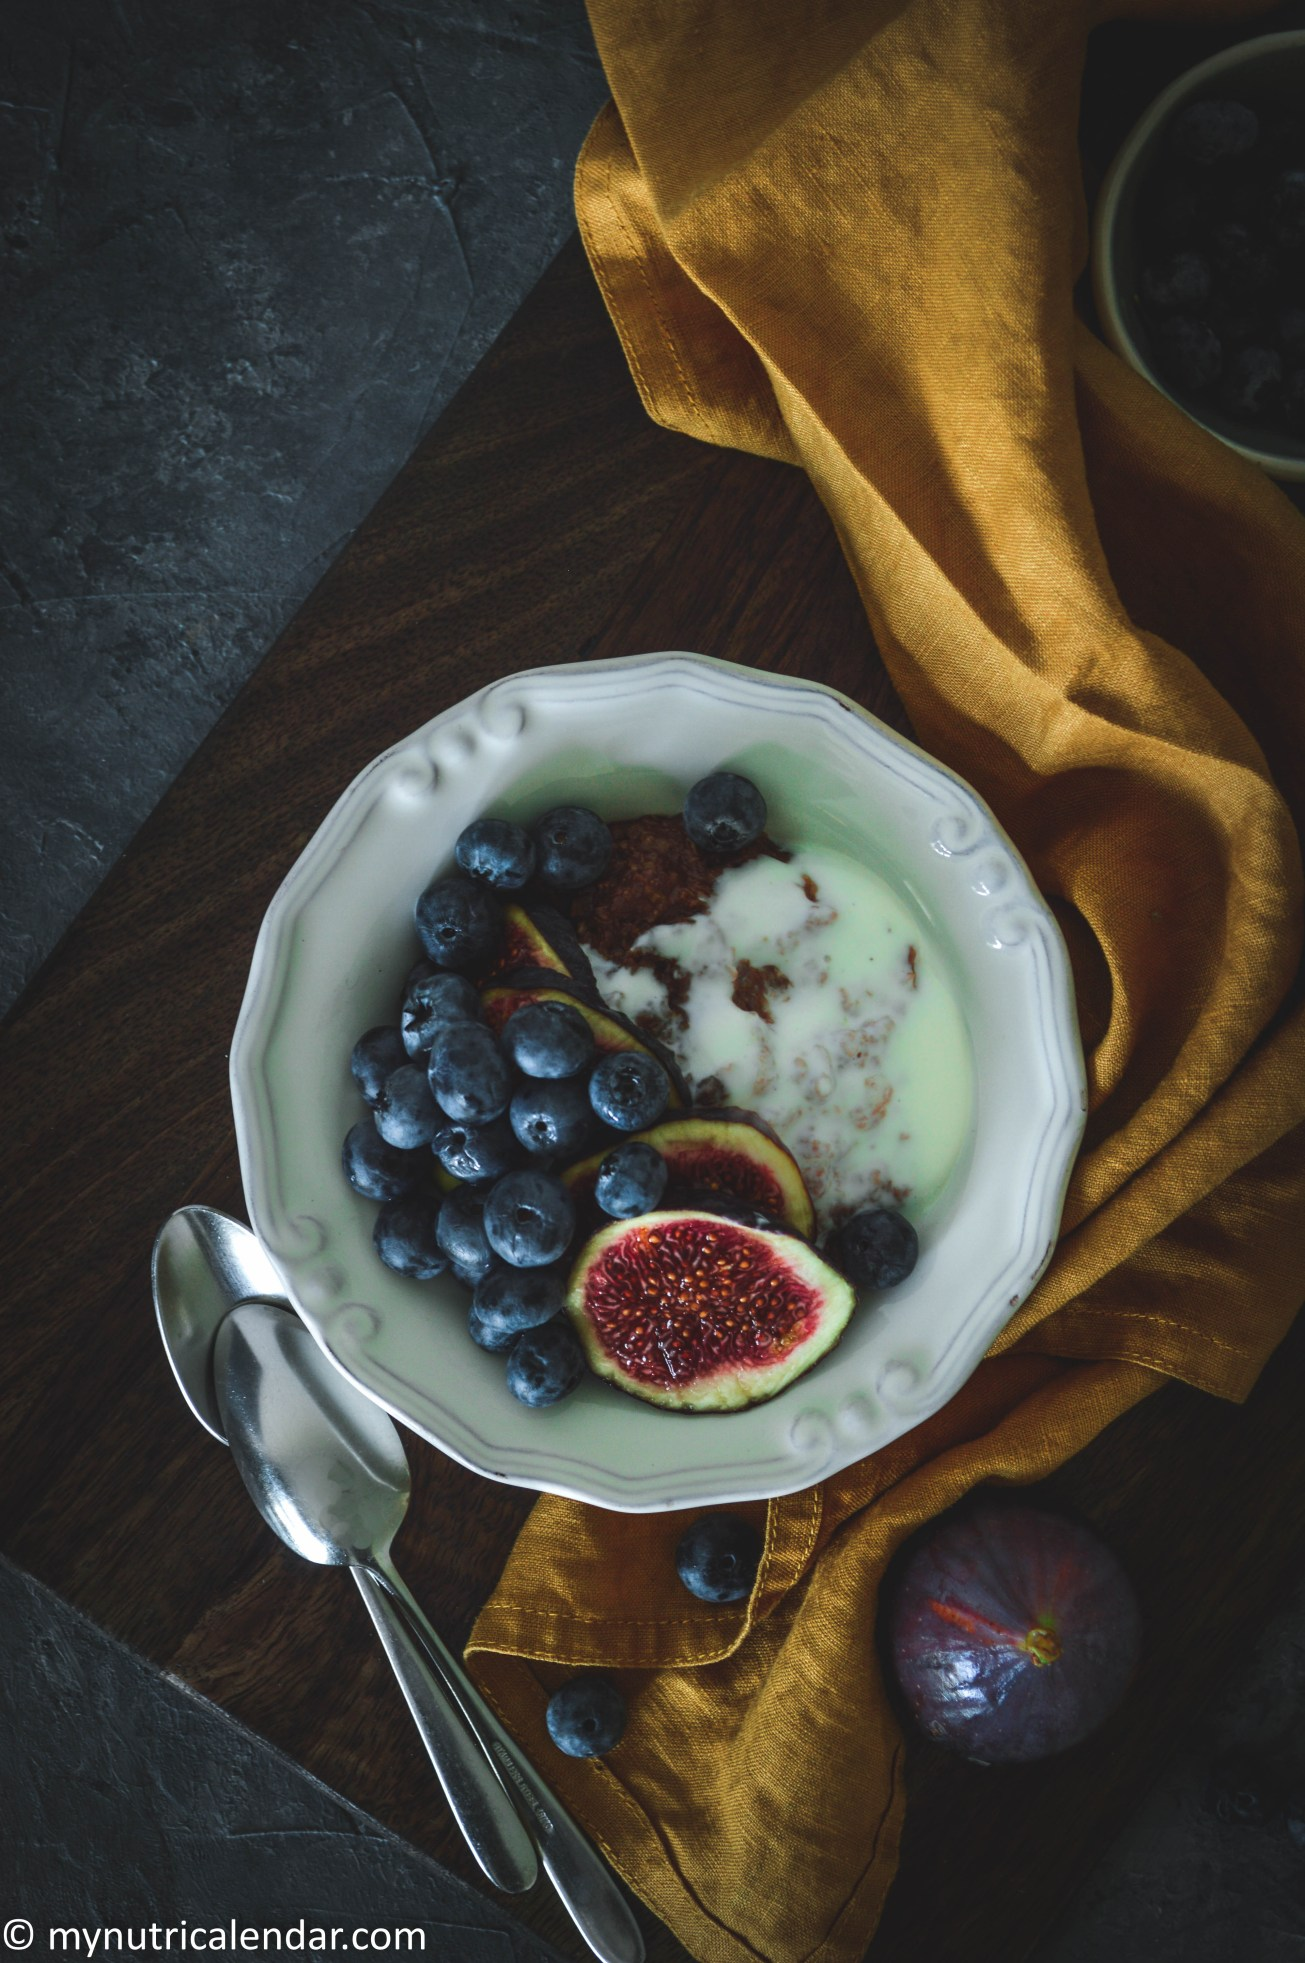 chocolate-oats-porridge-vanilla-soy-yogurt-blueberries-figs-toppings-food-photography-σοκολάτα-χυλός-βρώμης-γιαούρτι-βανίλια-μύρτιλα-σύκα